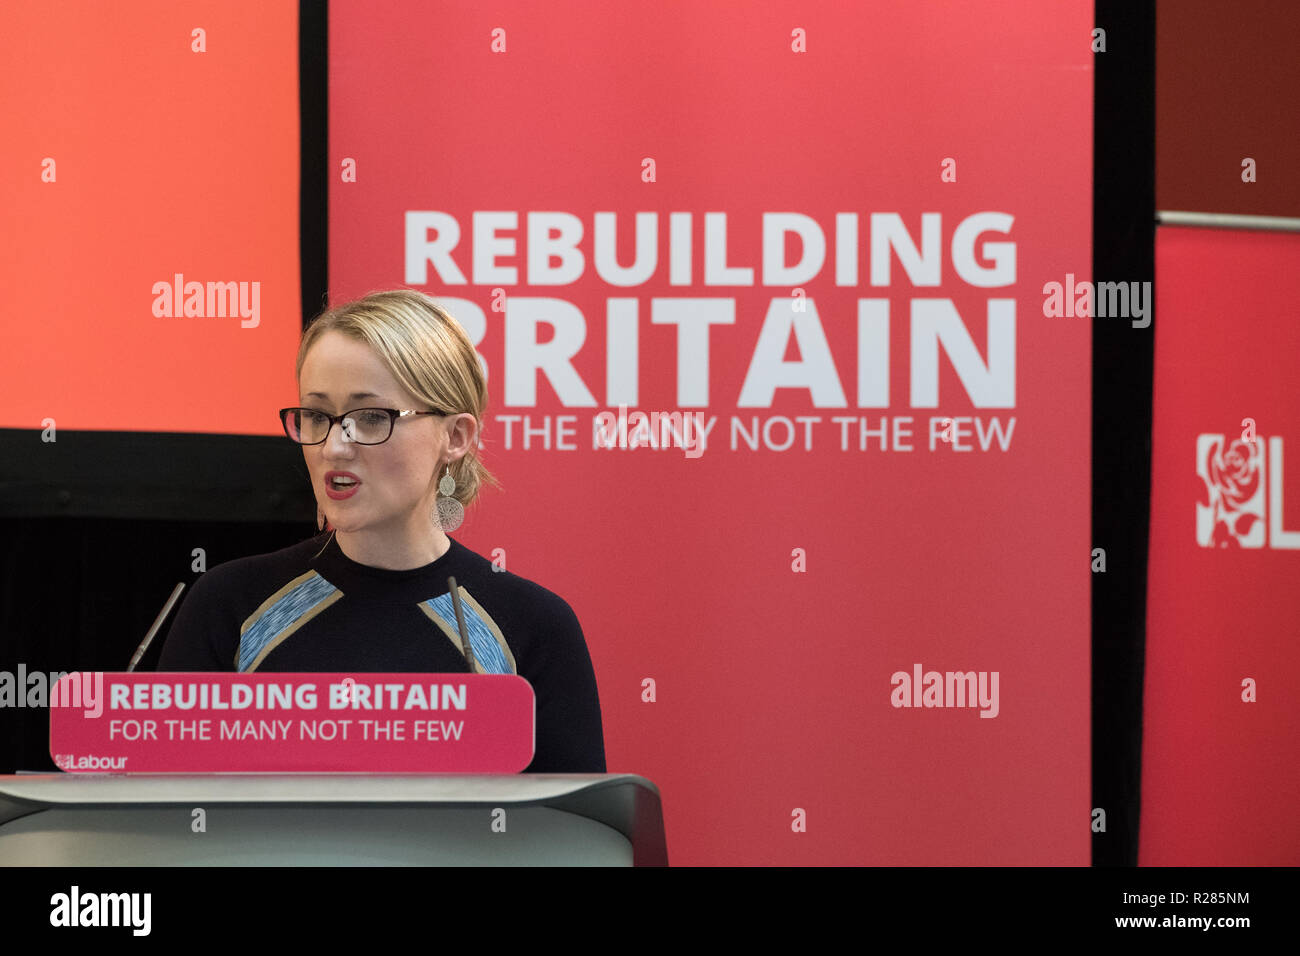 Mansfield, Nottinghamshire, England, UK. 17th November 2018. Rebecca Long-Bailey, Shadow Secretary of State for Business, Energy and Industrial Strategy in Mansfield, speaking about the new policy 'The Road To Building The Economy'. These are a series of events looking at the impact of austerity on towns and at the tools and policies Labour will use to rebuild the economy. Alan Beastall/Alamy Live News Stock Photo